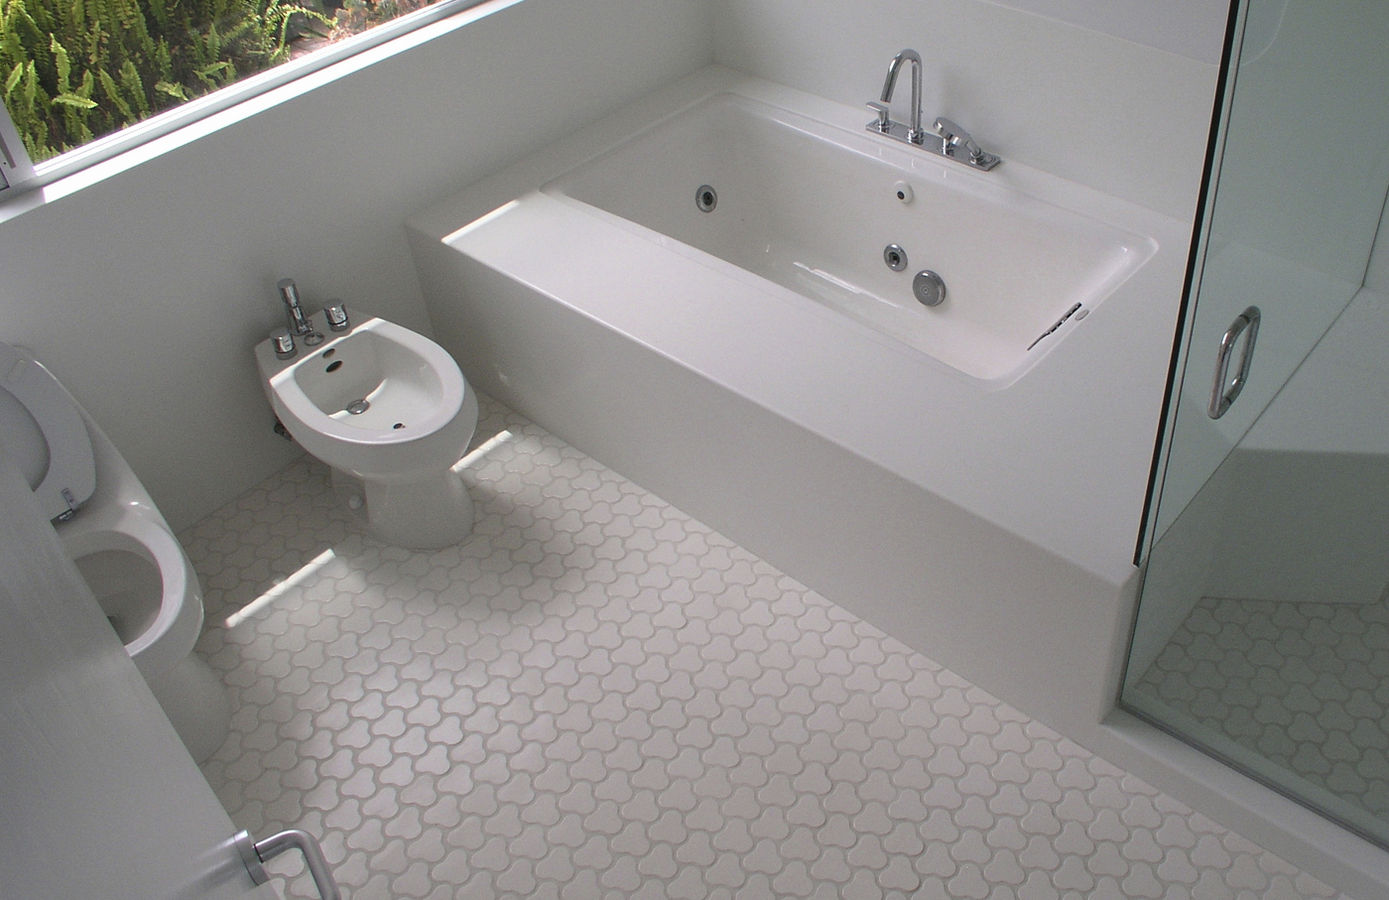 Charmant Wonderful Bathroom Using Appealing Bathroom Floor Tile Under White Bathtub  And Closed Glass Shower Space